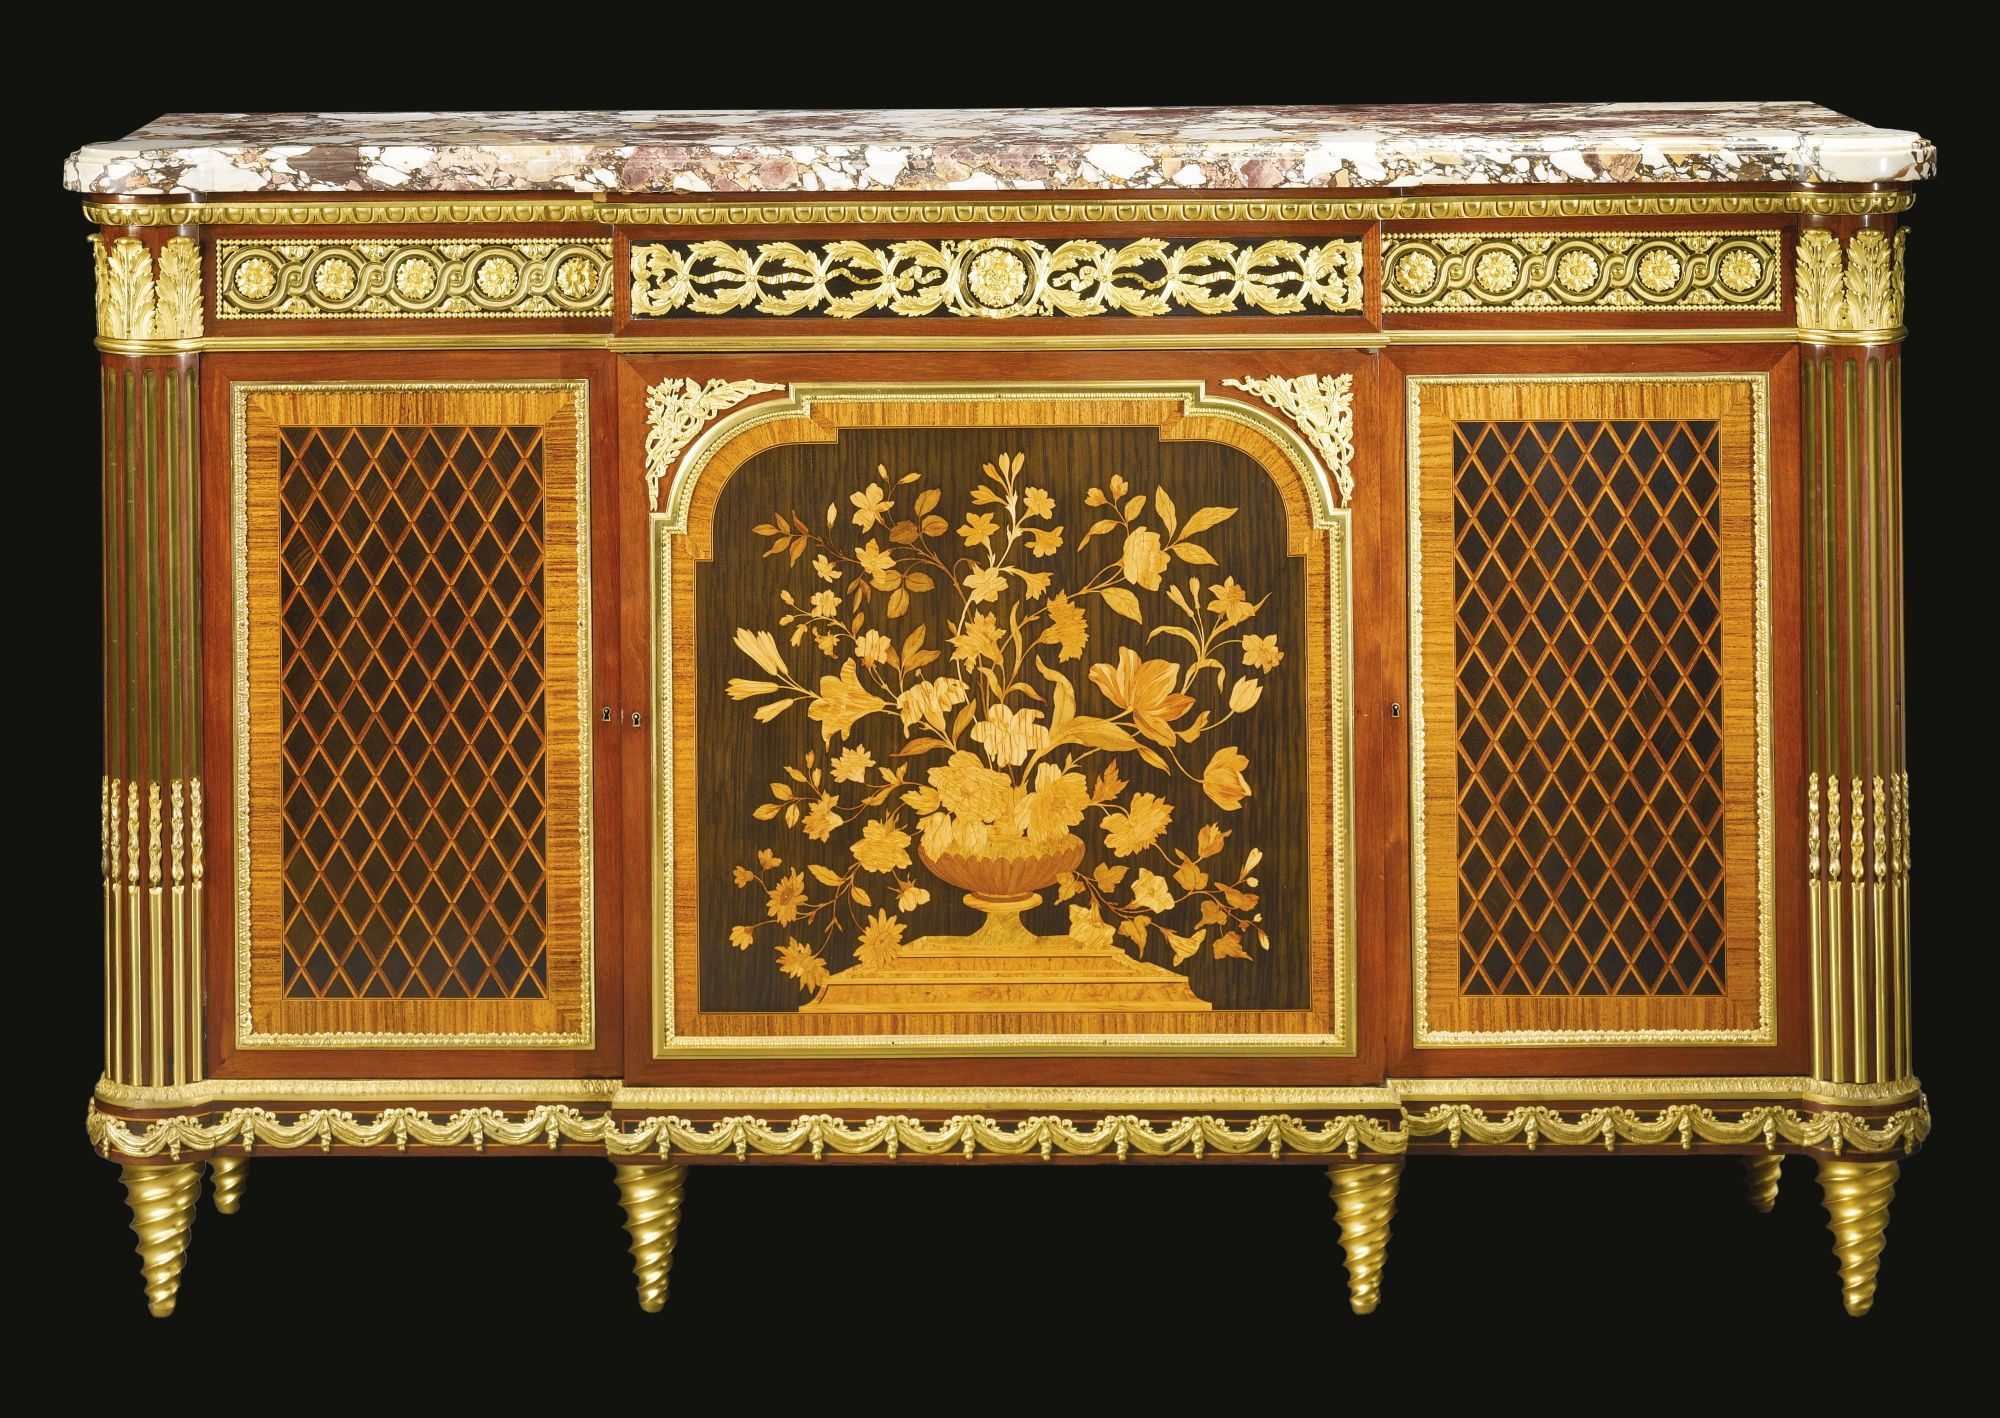 Meuble Louis 16 A Fine Louis Xvi Style Gilt Bronze Mounted Mahogany Ebony